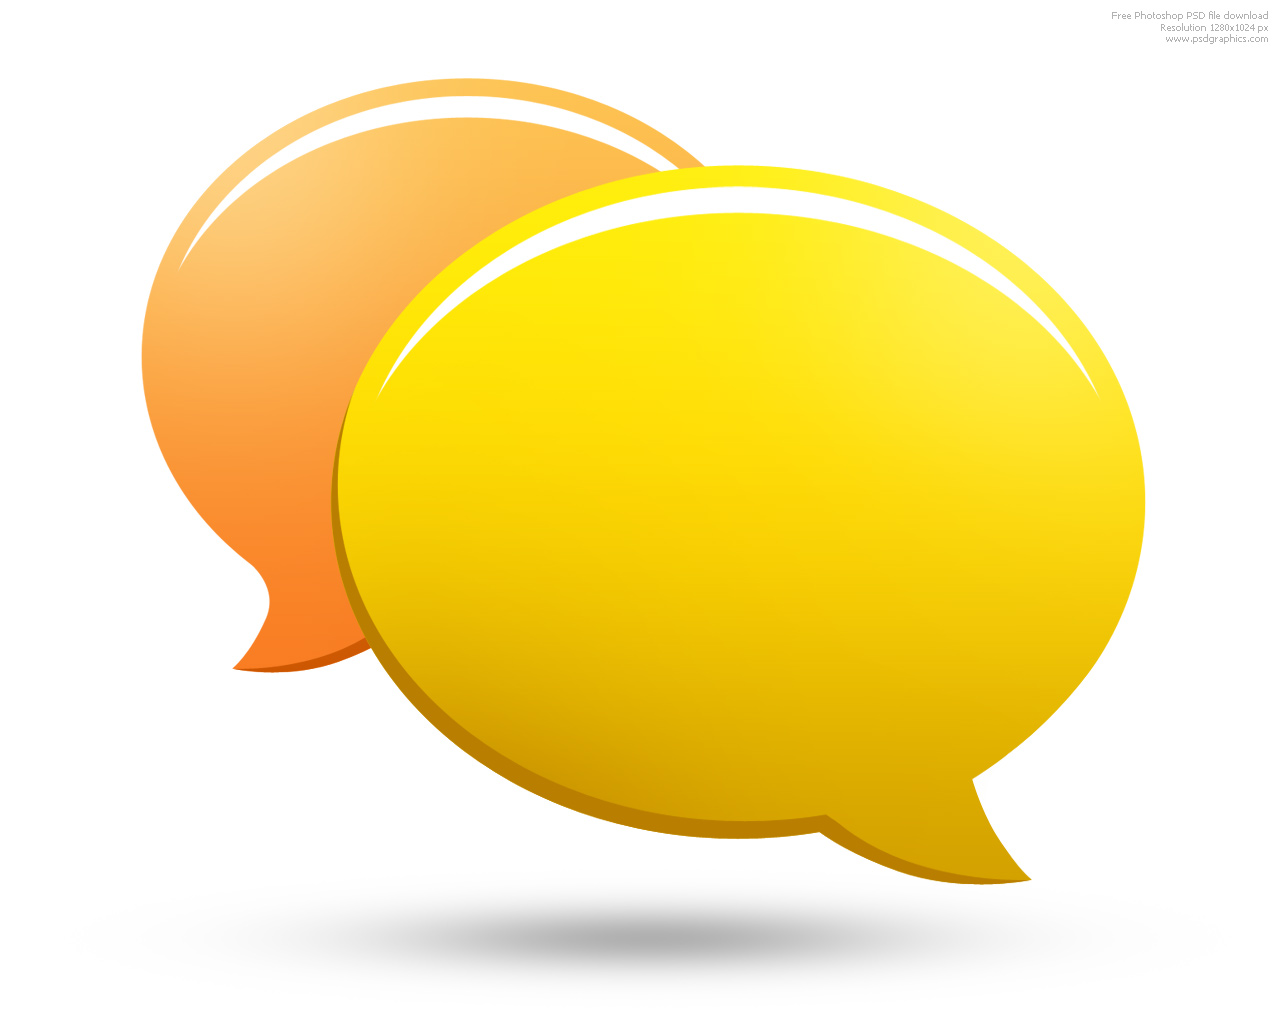 Full size – JPG preview: Chat icon